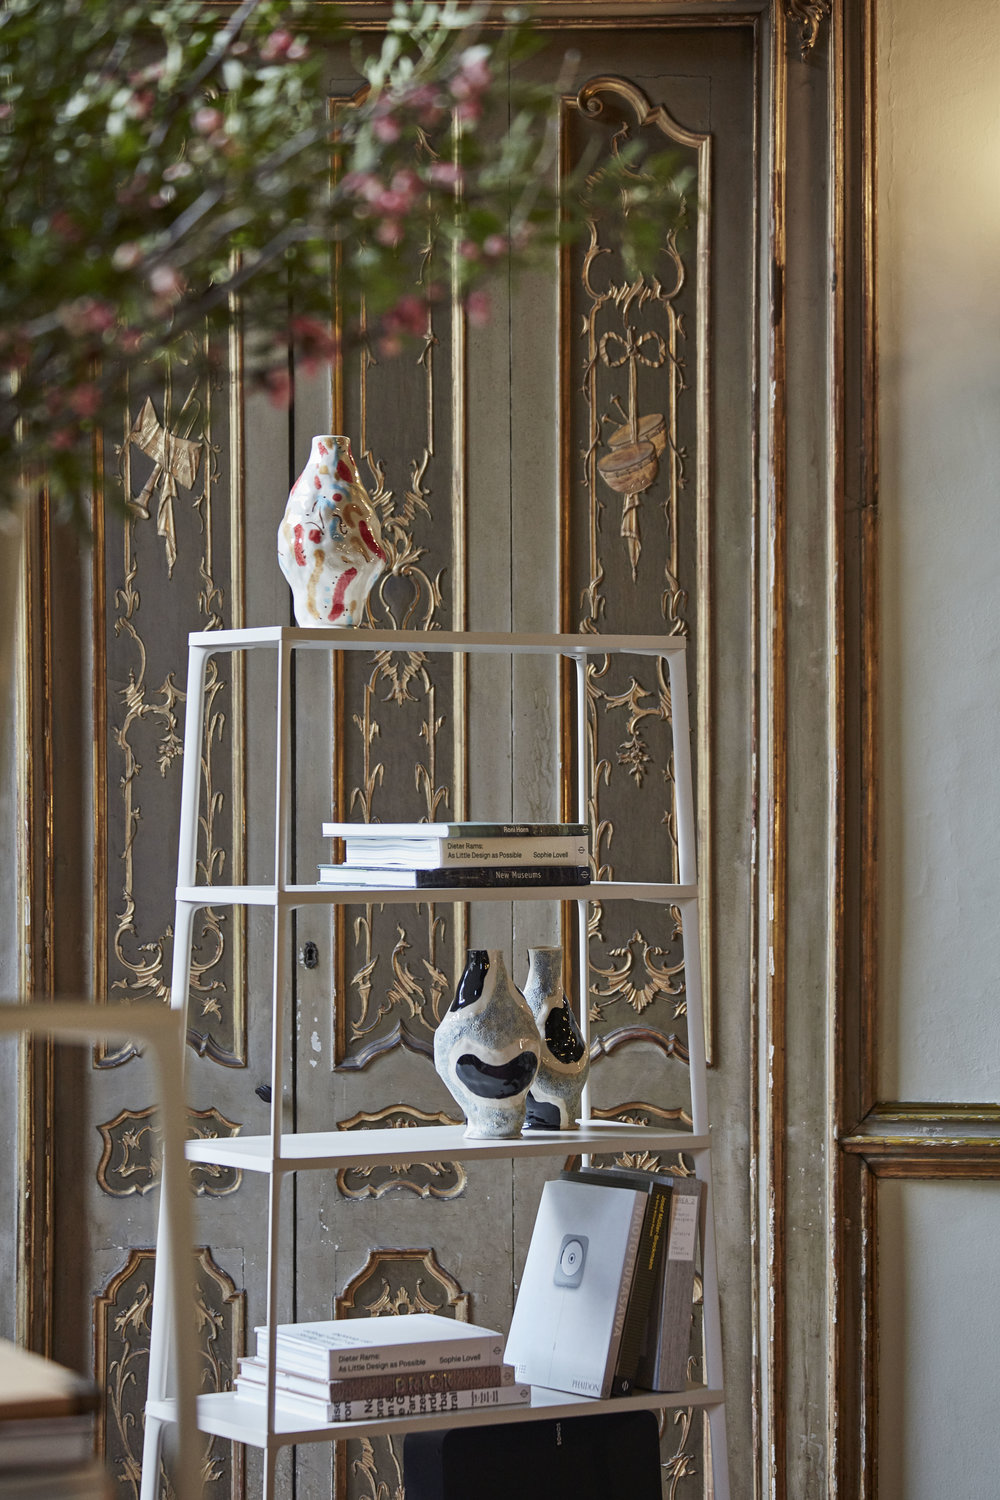 Hay was on display in the Palazzo Clerici. The Baroque interior of the Milanese palace and the soft spring light suited the young Danish brand nicely.